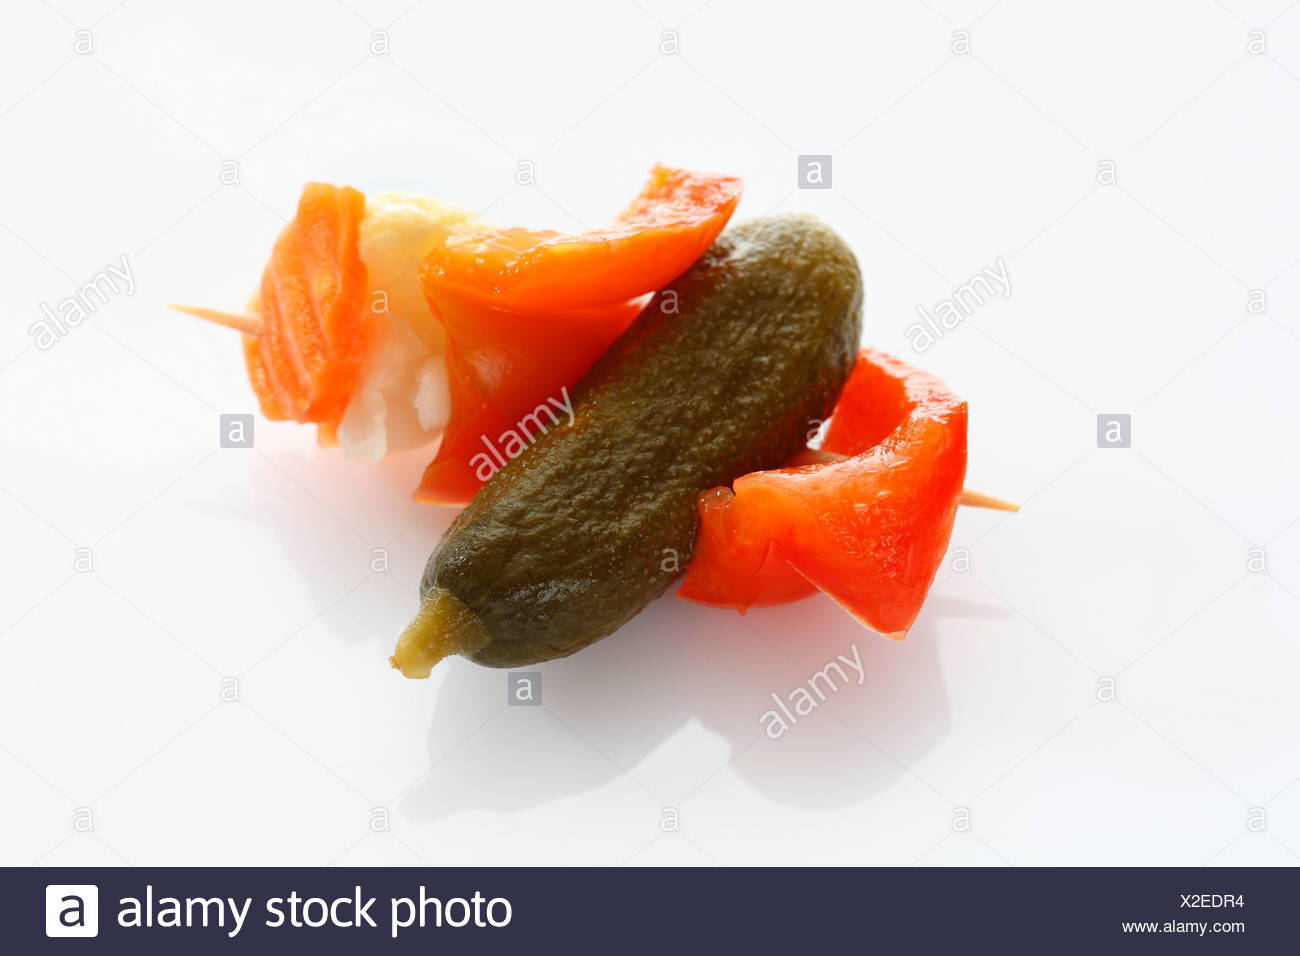 Preserved mixed pickles in skewer, close up - Stock Image